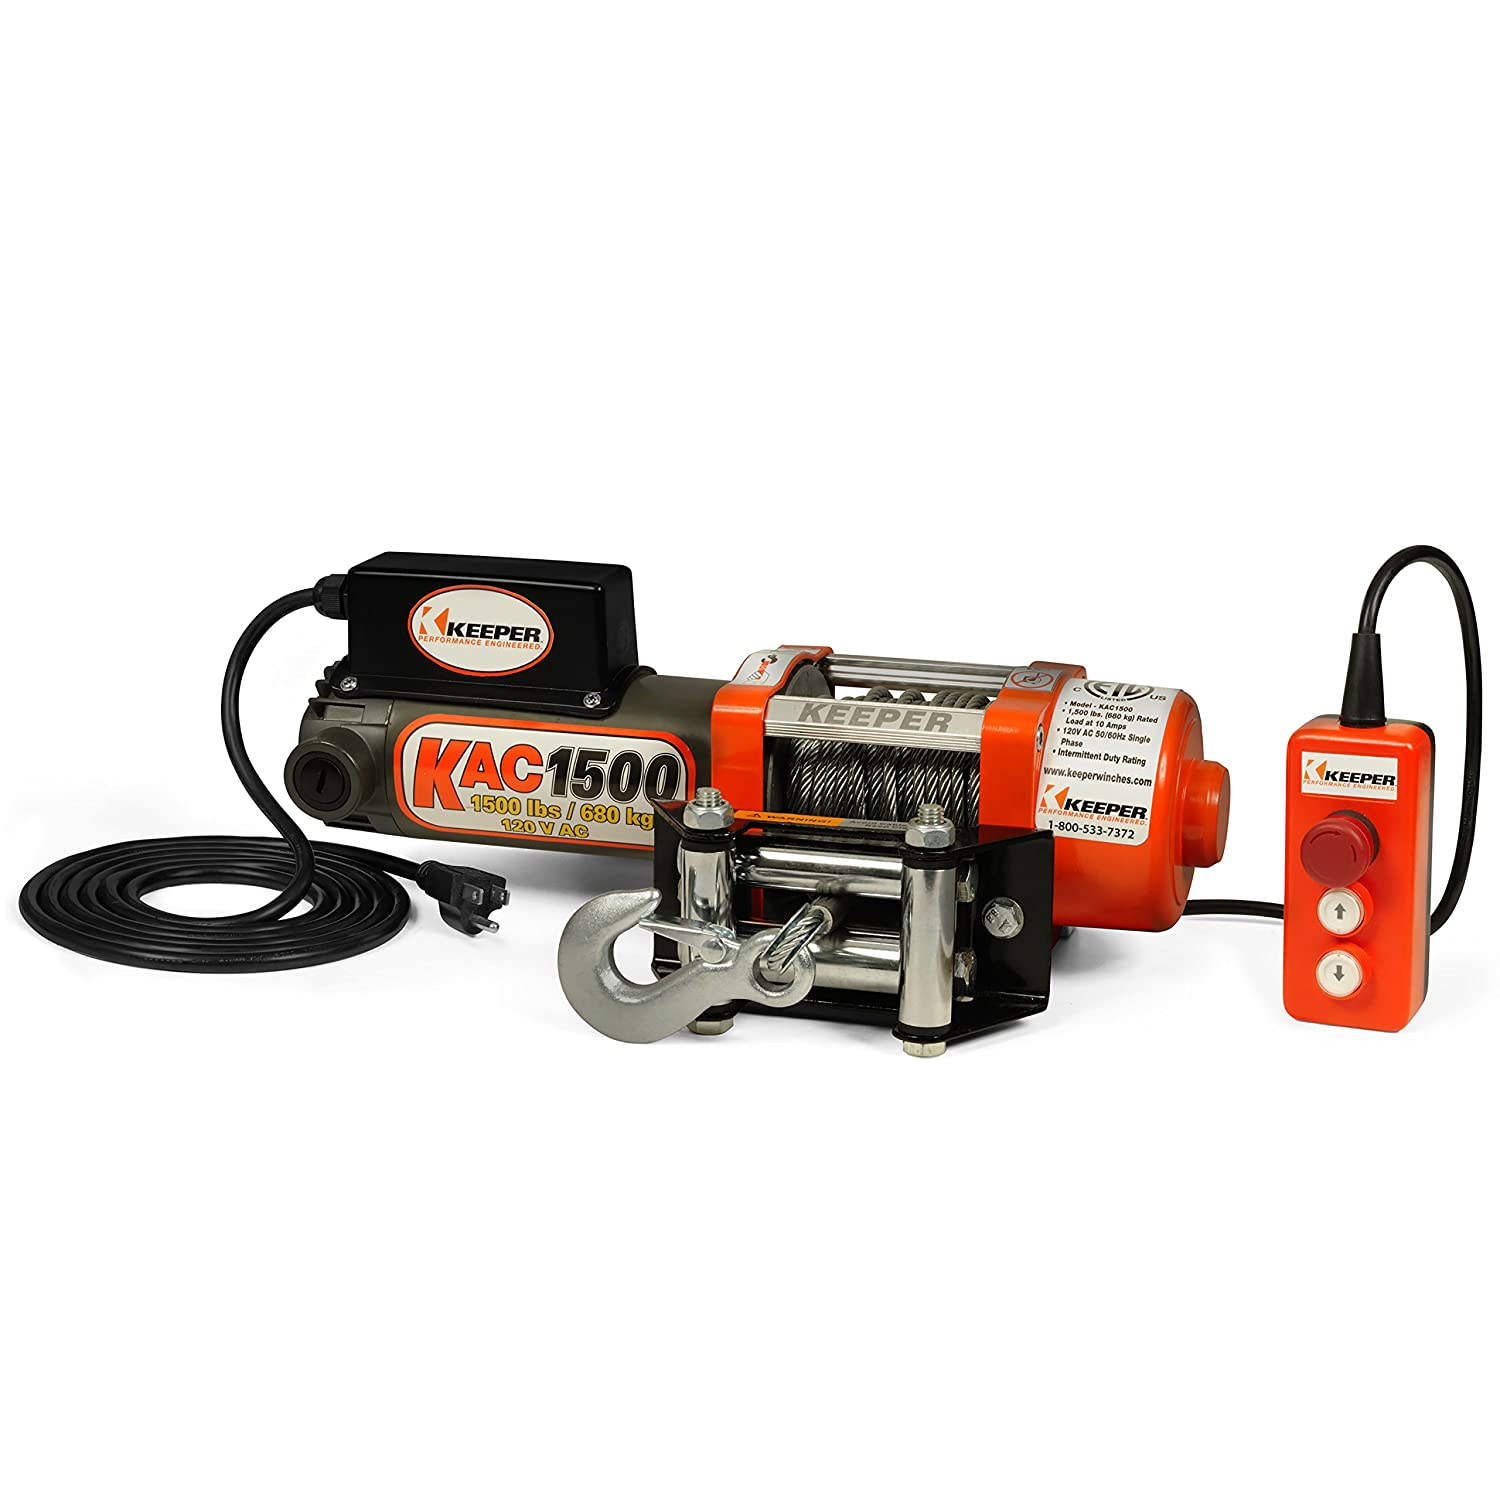 Keeper KAC1500 110/120V AC Electric Winch with Hand Held Remote - 1500 on